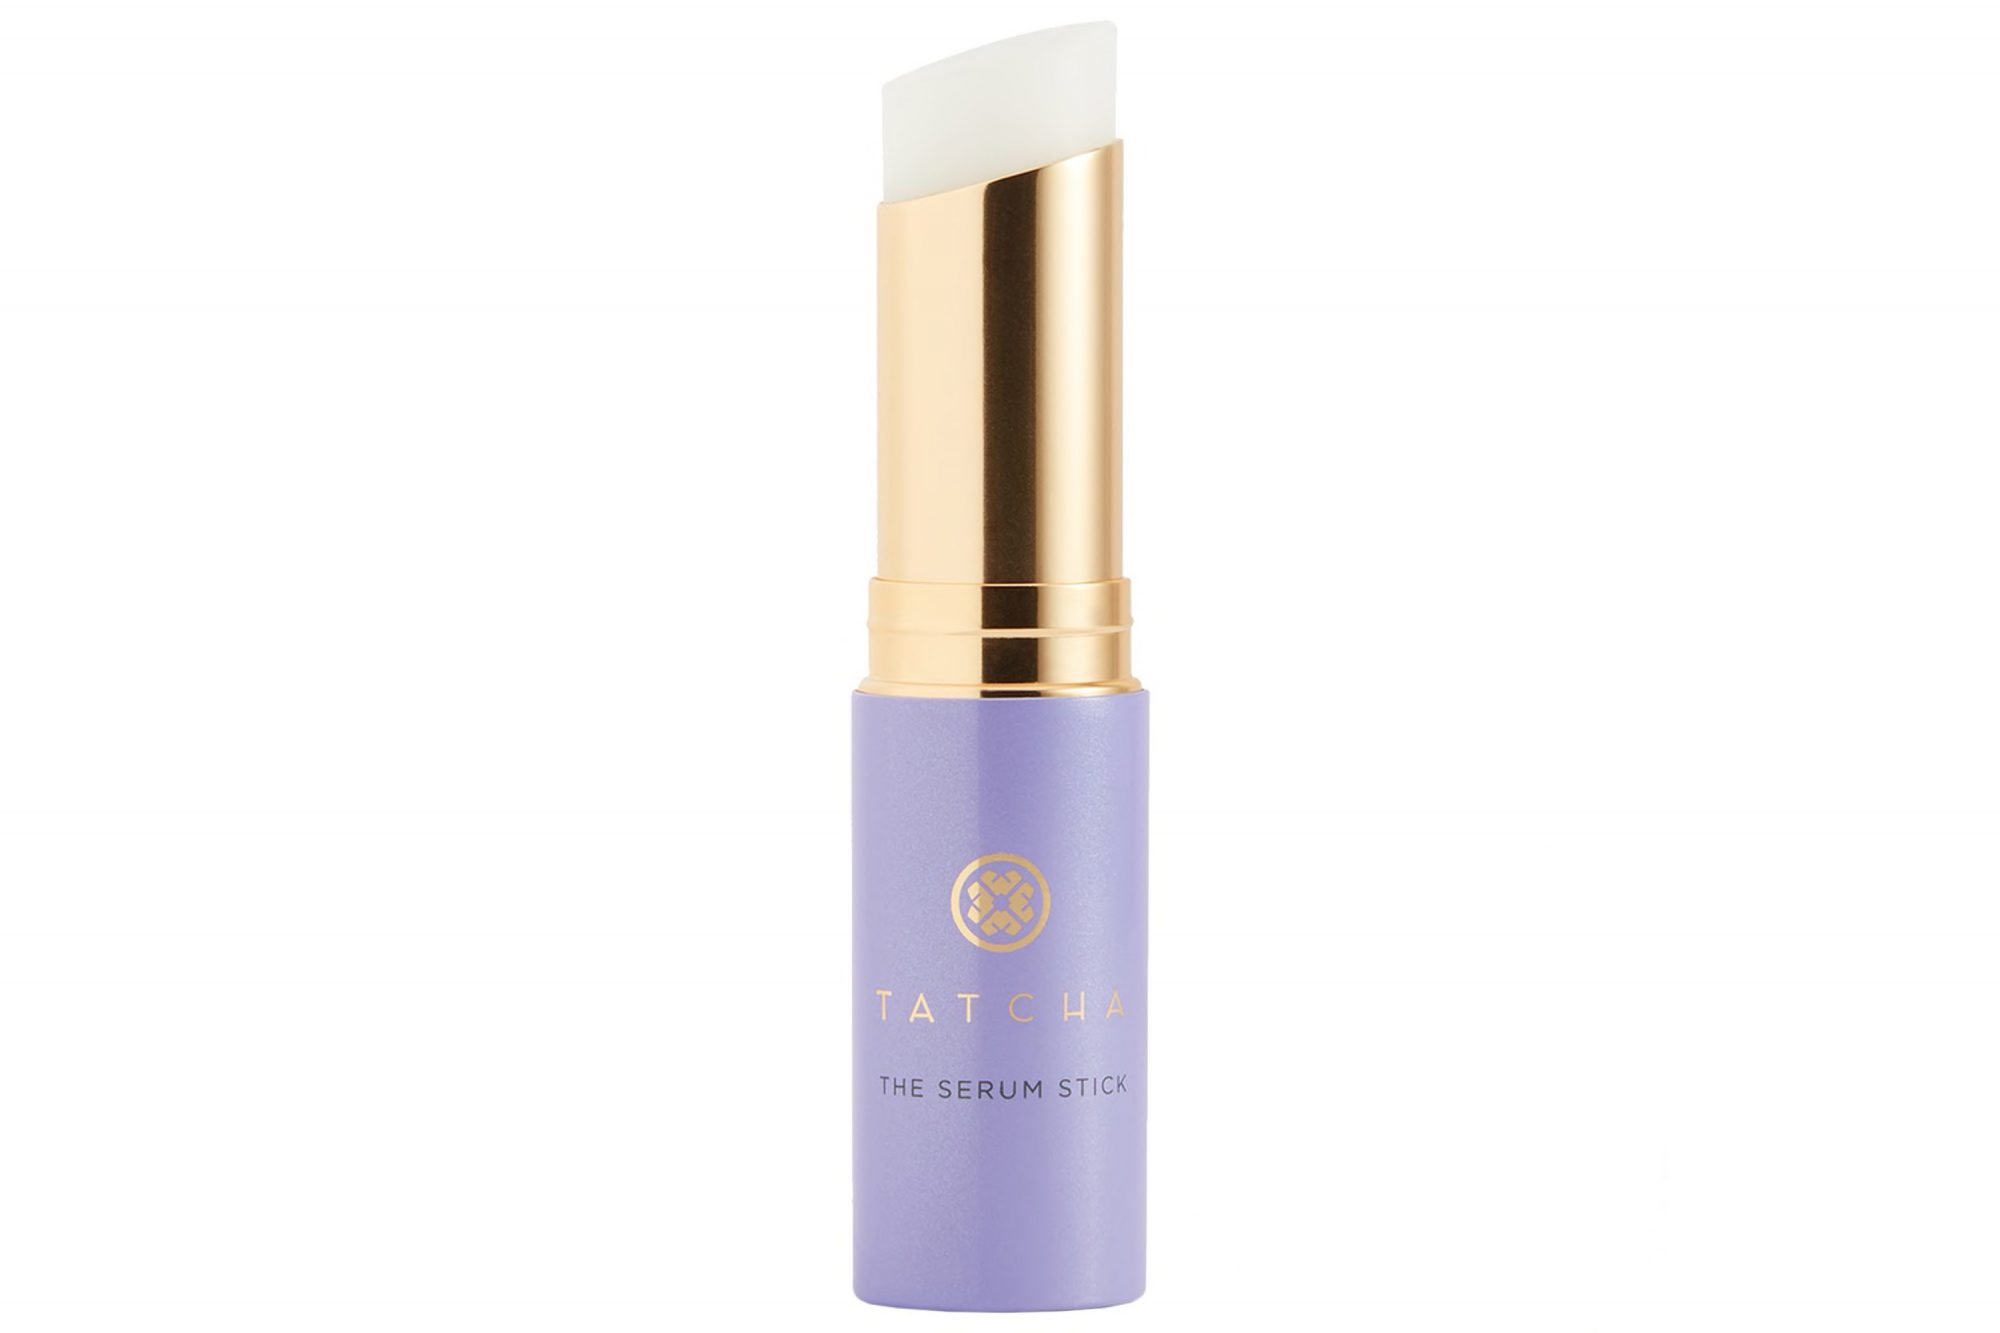 skip-care-serum-stick-tatcha.jpg